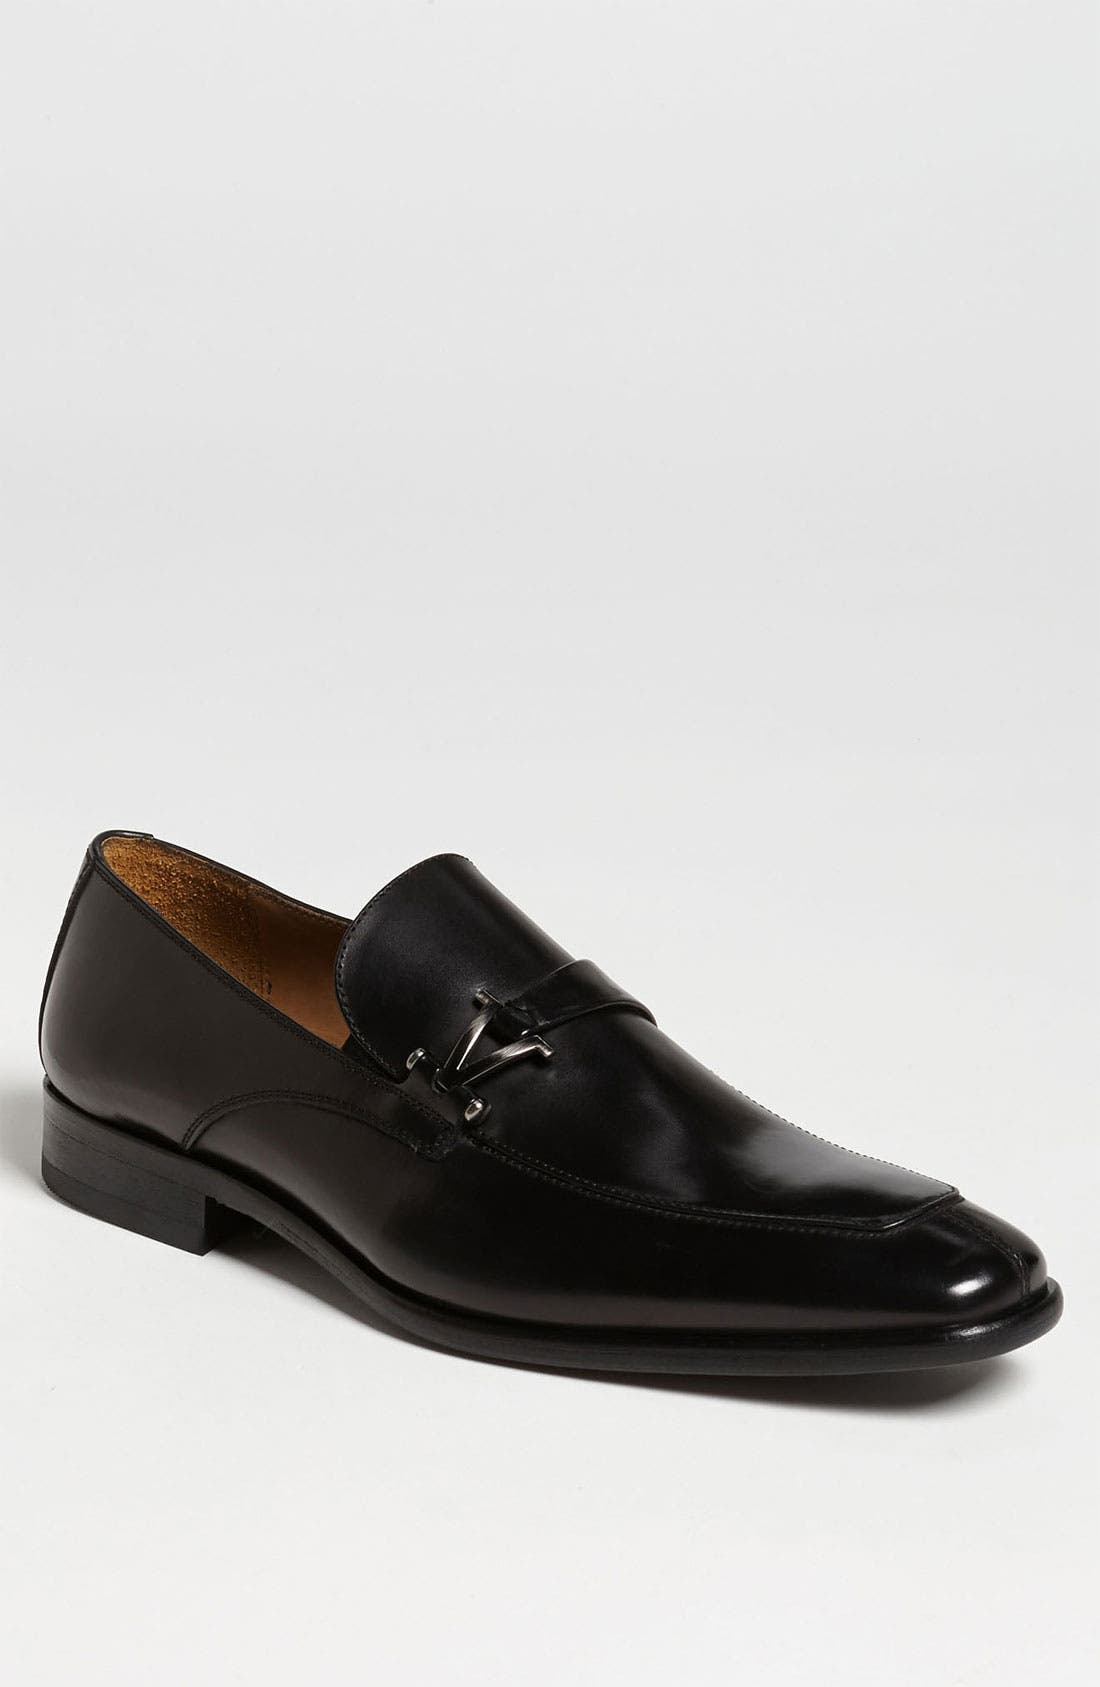 Main Image - Vince Camuto 'Gavino' Bit Loafer